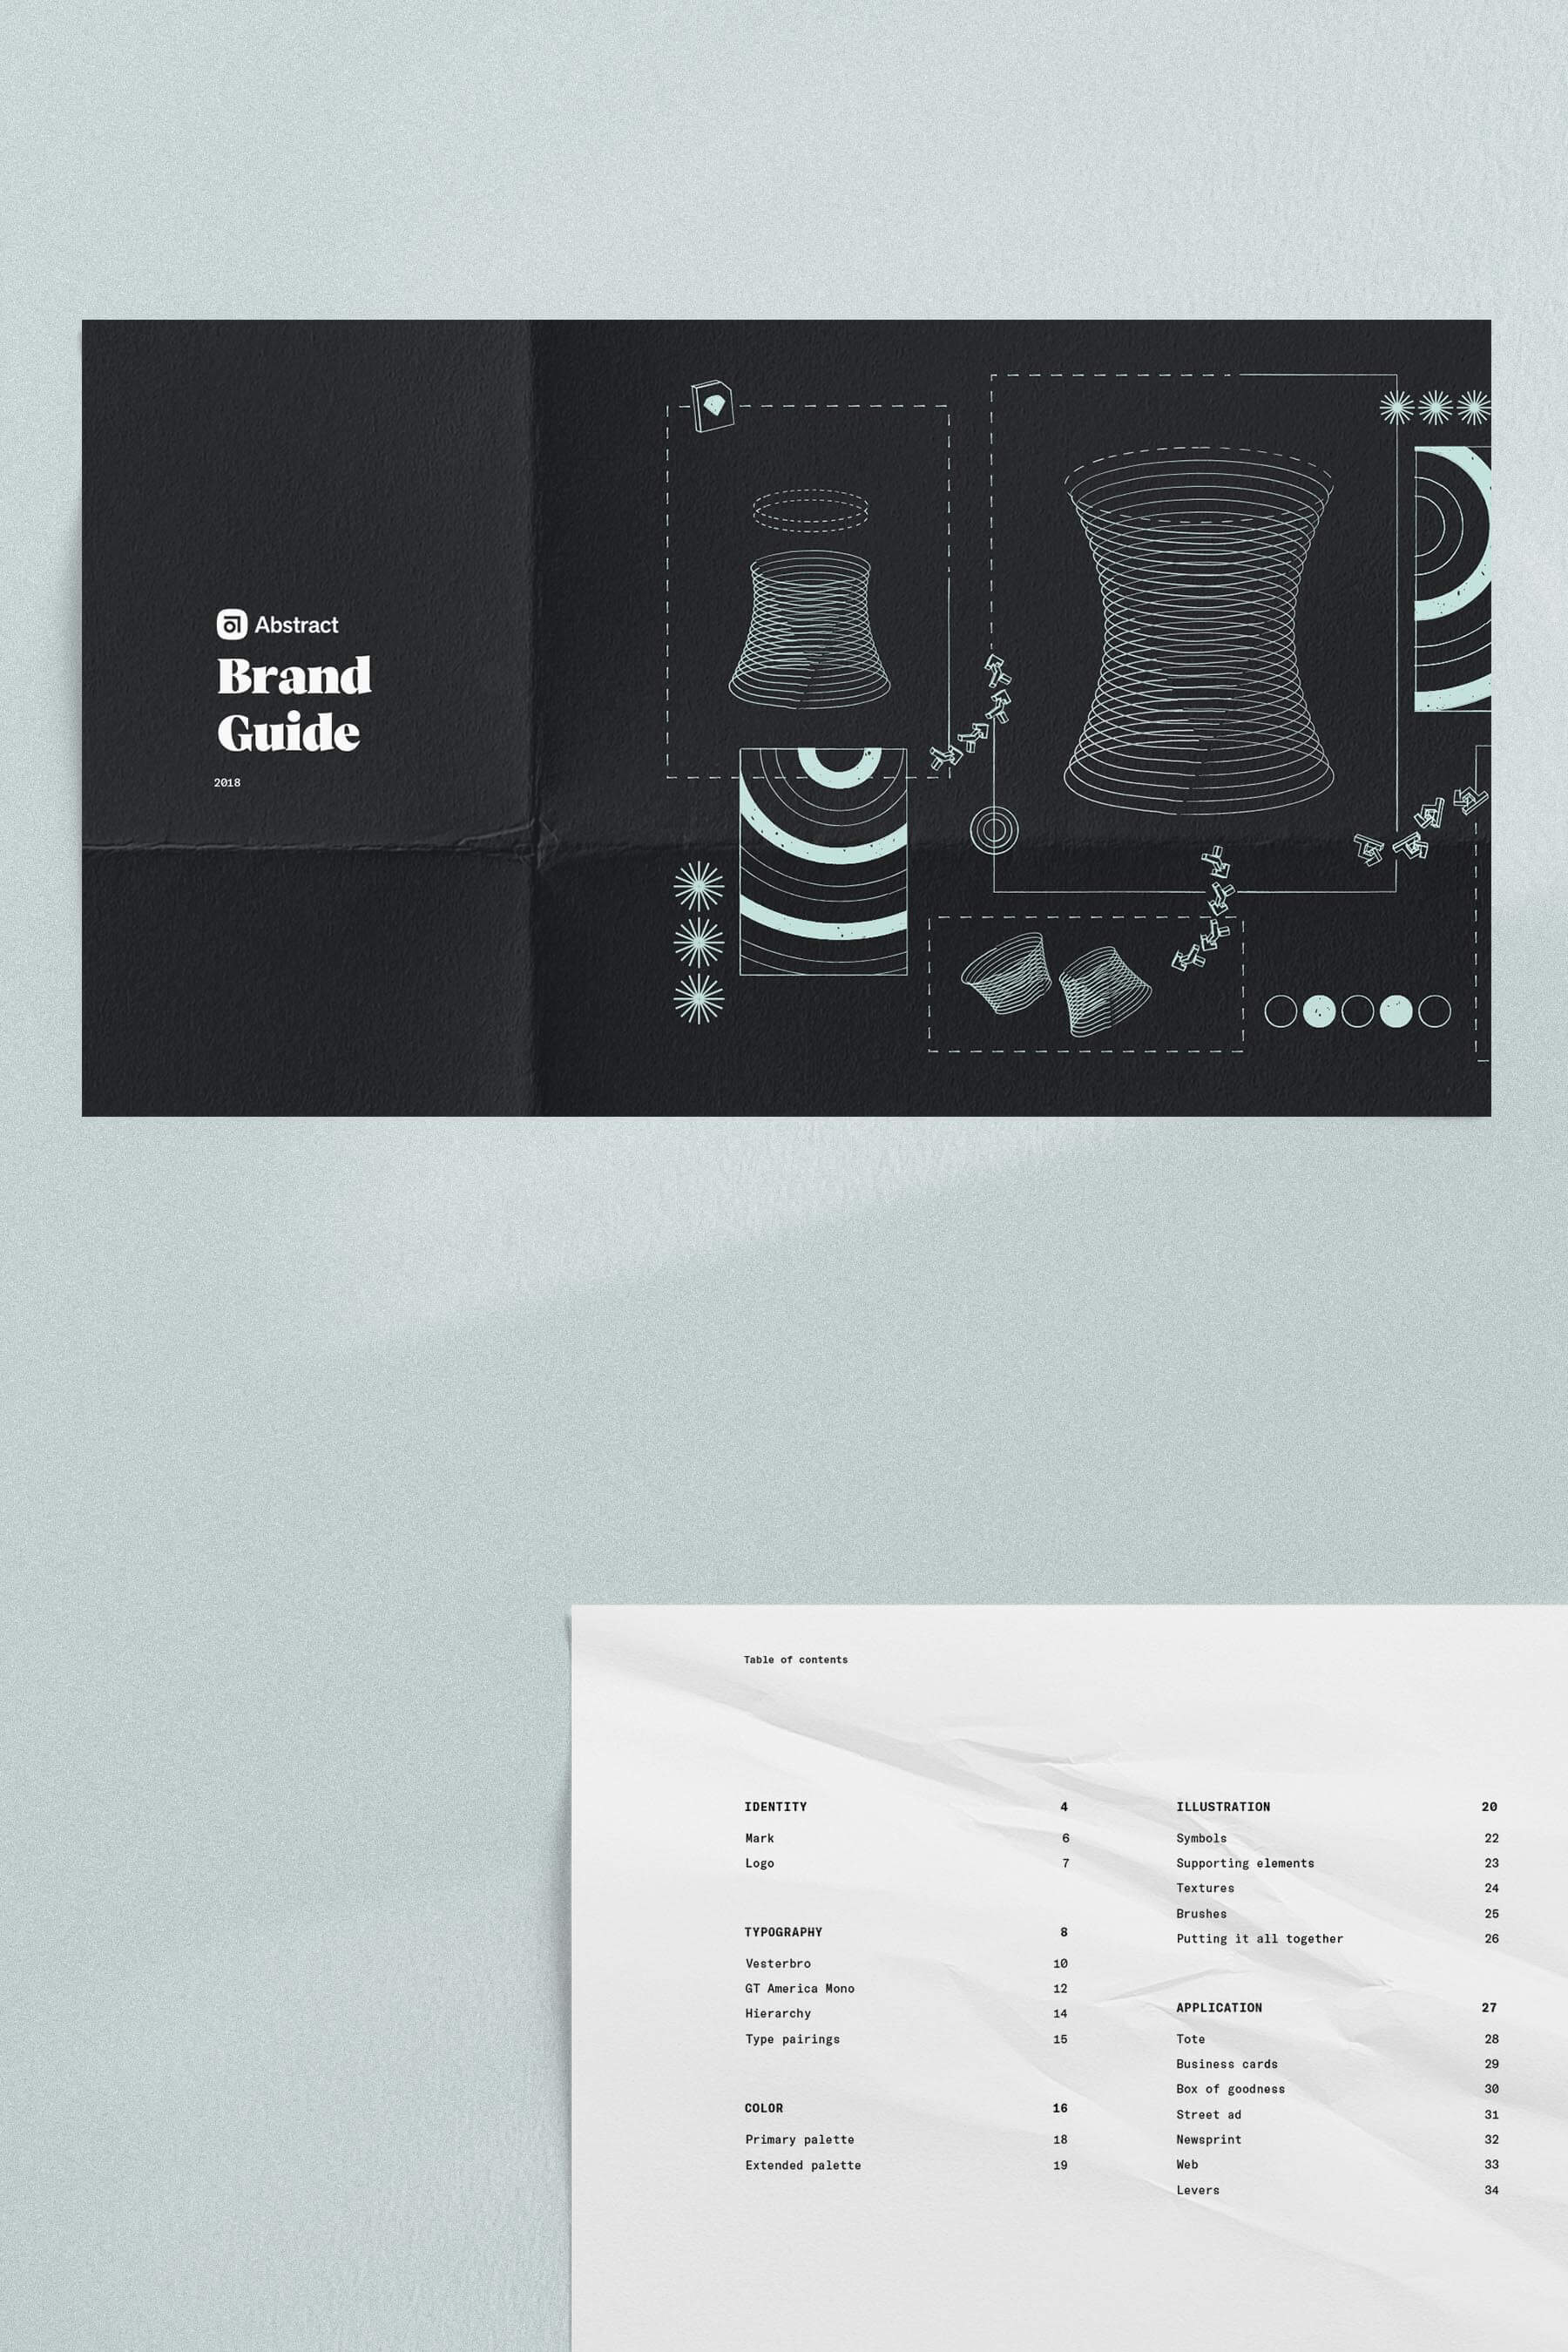 Abstract brand guide.